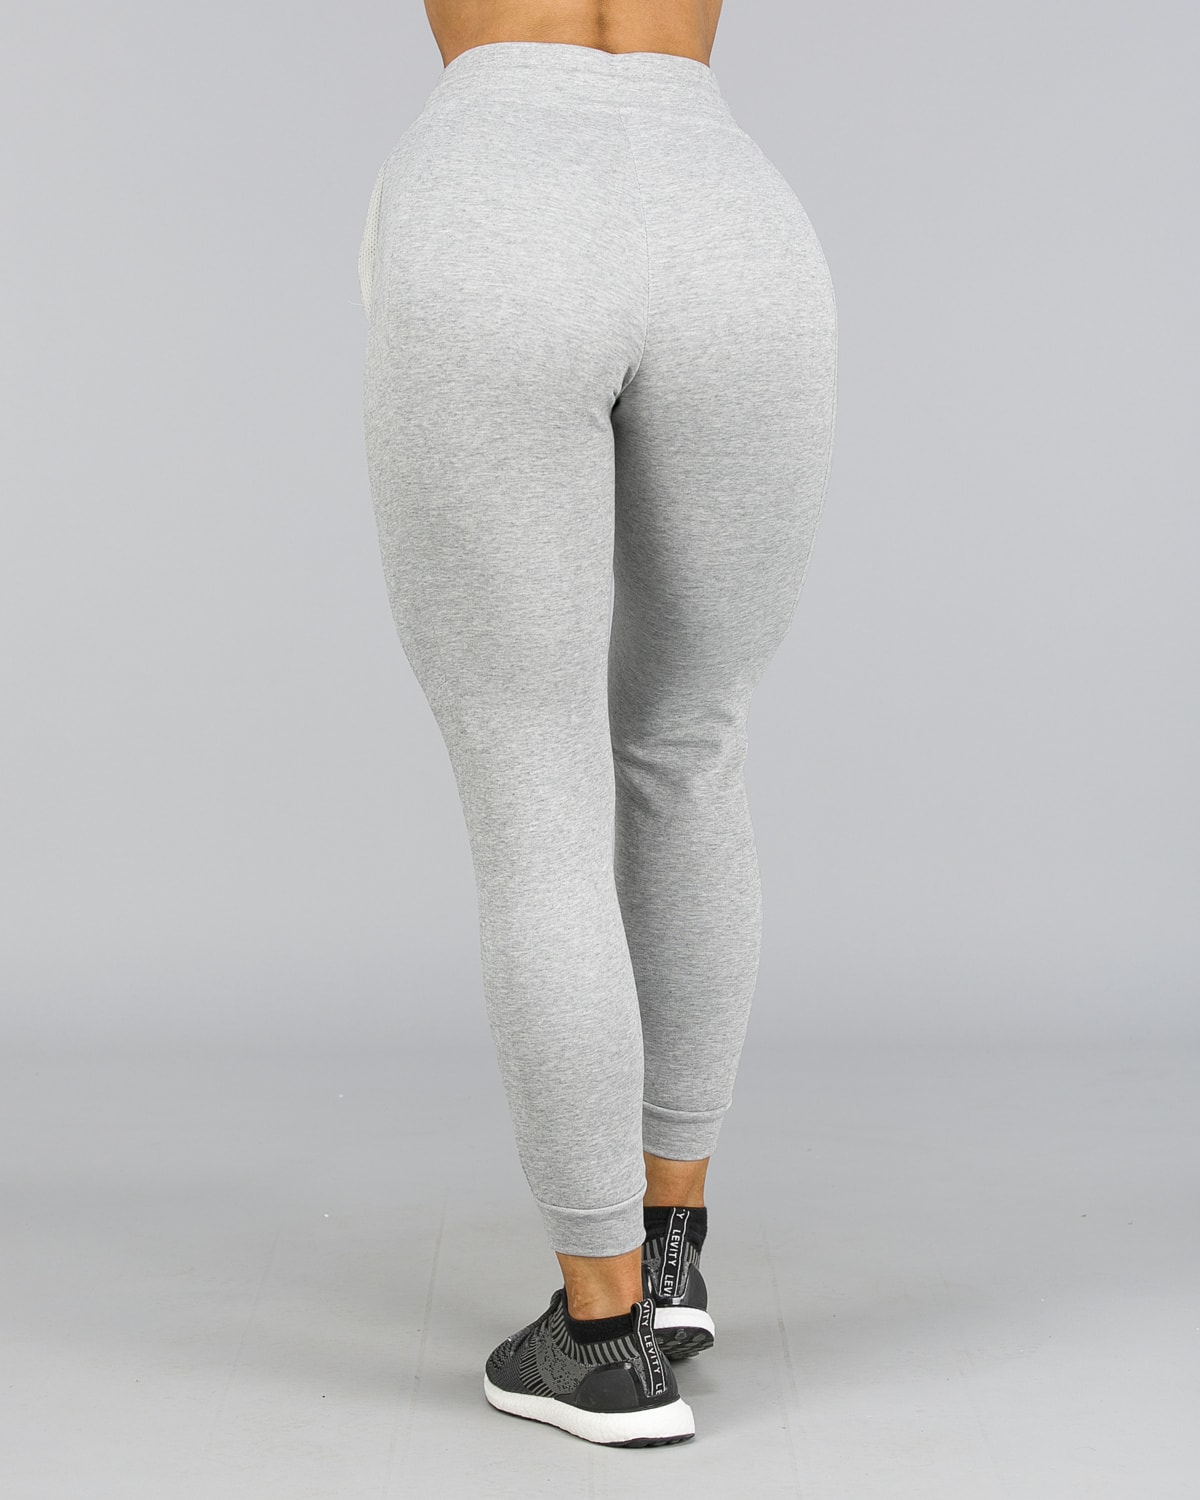 ICANIWILL – Sweat Pants – Light Grey 2